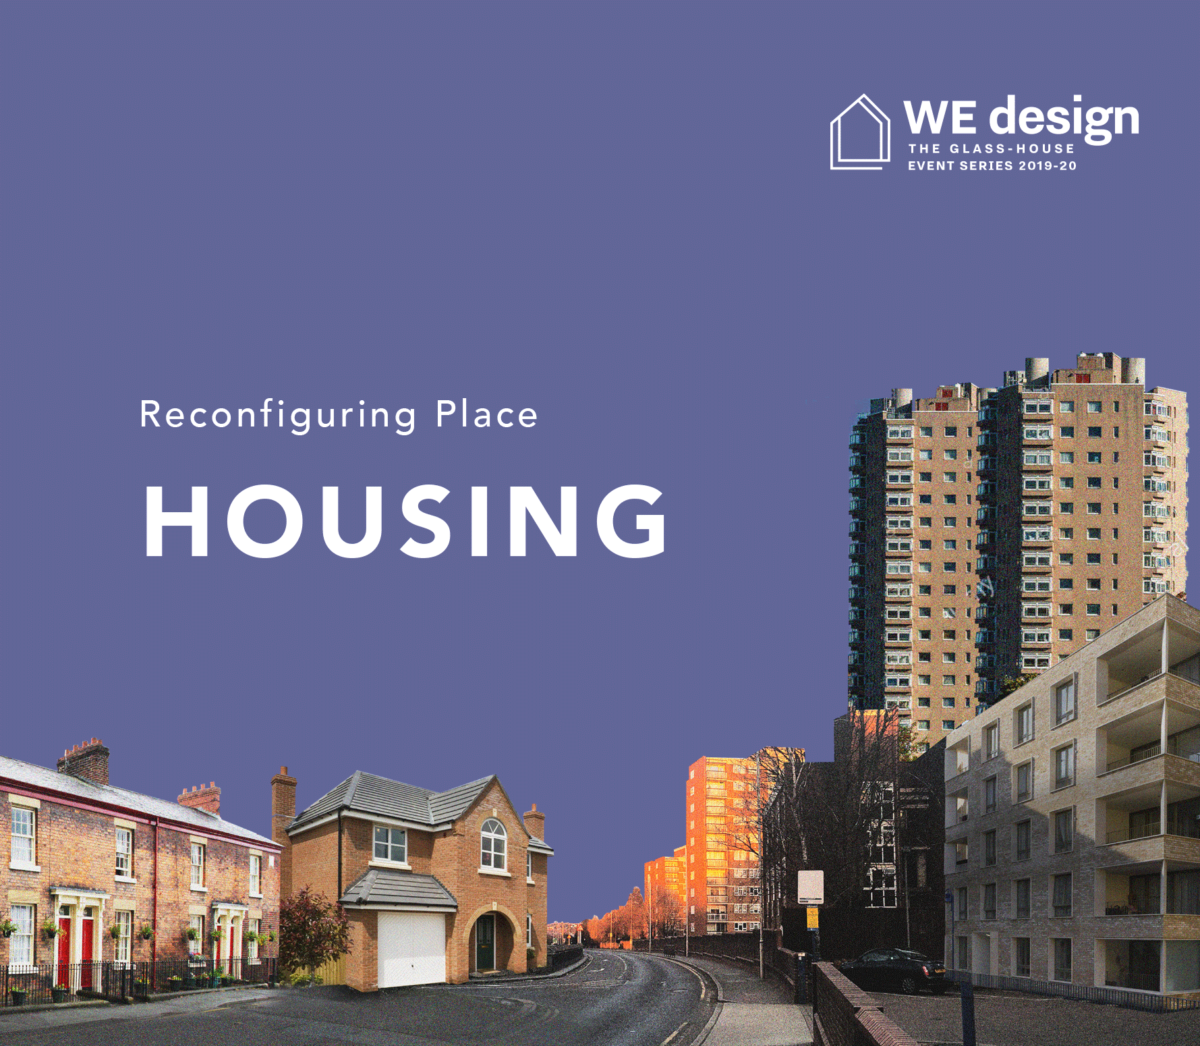 Reconfiguring Place: Housing